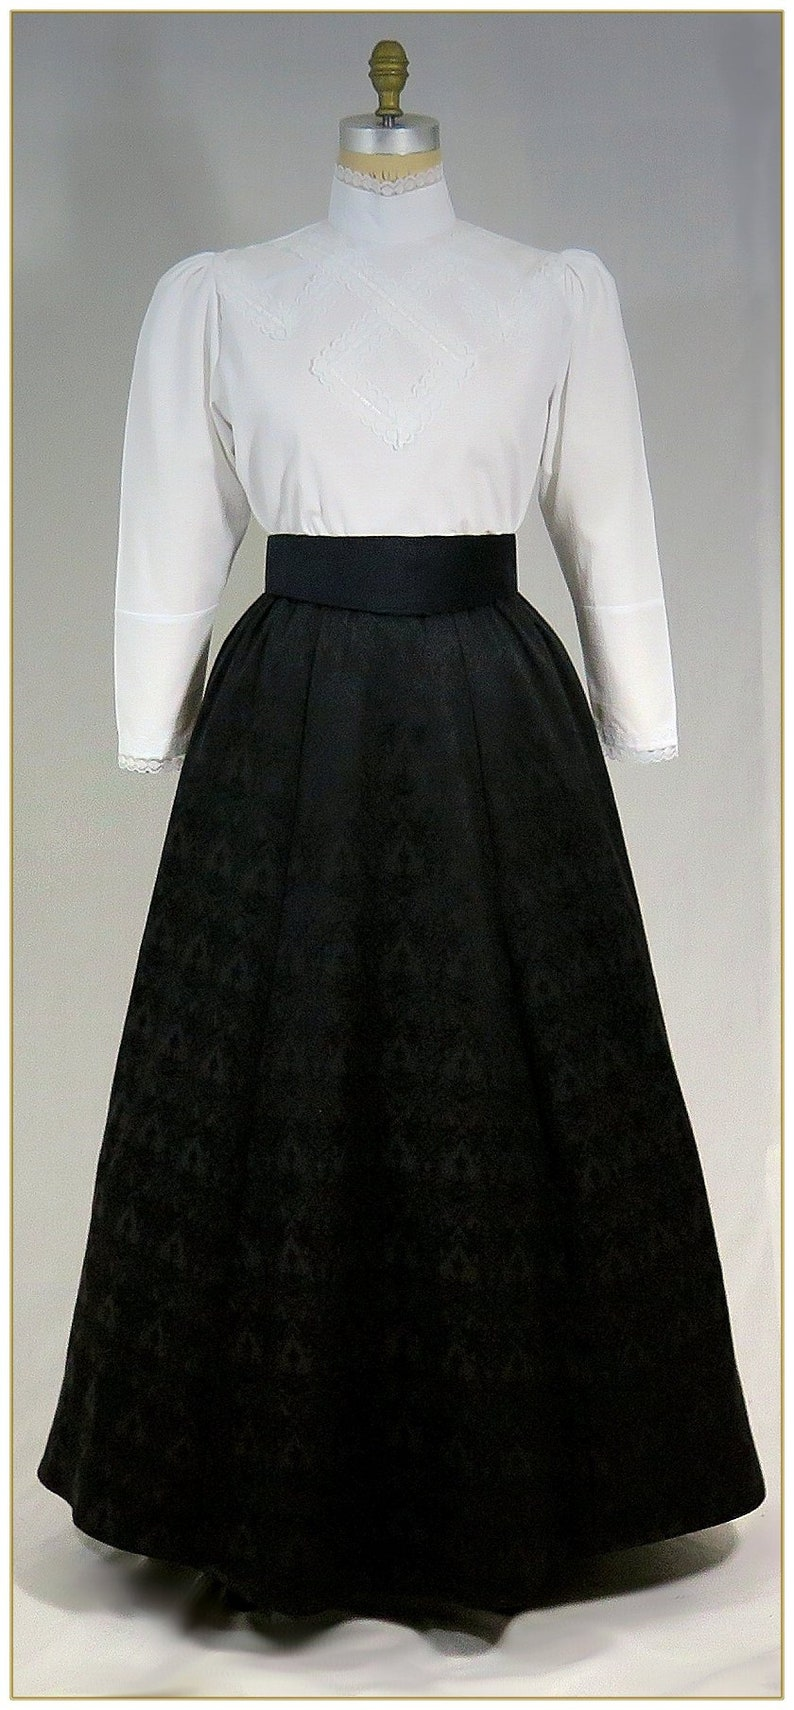 Edwardian Ladies Clothing – 1900, 1910s, Titanic Era 1890-1905 Victorian Black Jacquard Skirt $68.00 AT vintagedancer.com